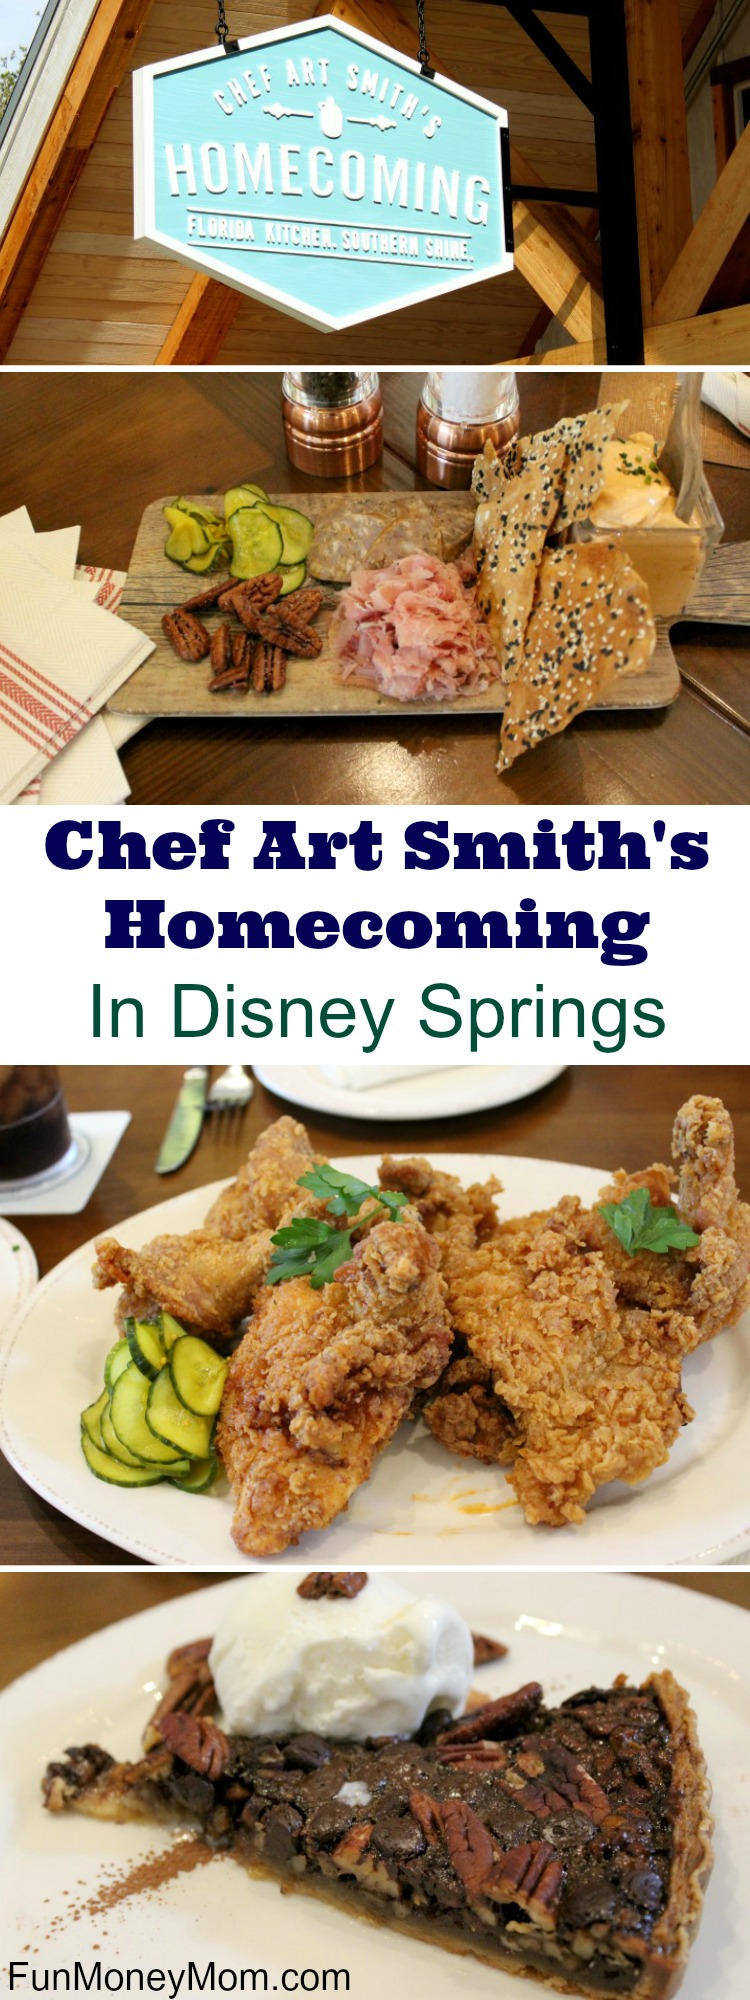 Heading to Disney Springs? If you like good ol' fashioned southern cooking, you're going to want to head straight to Chef Art Smith's Homecoming!